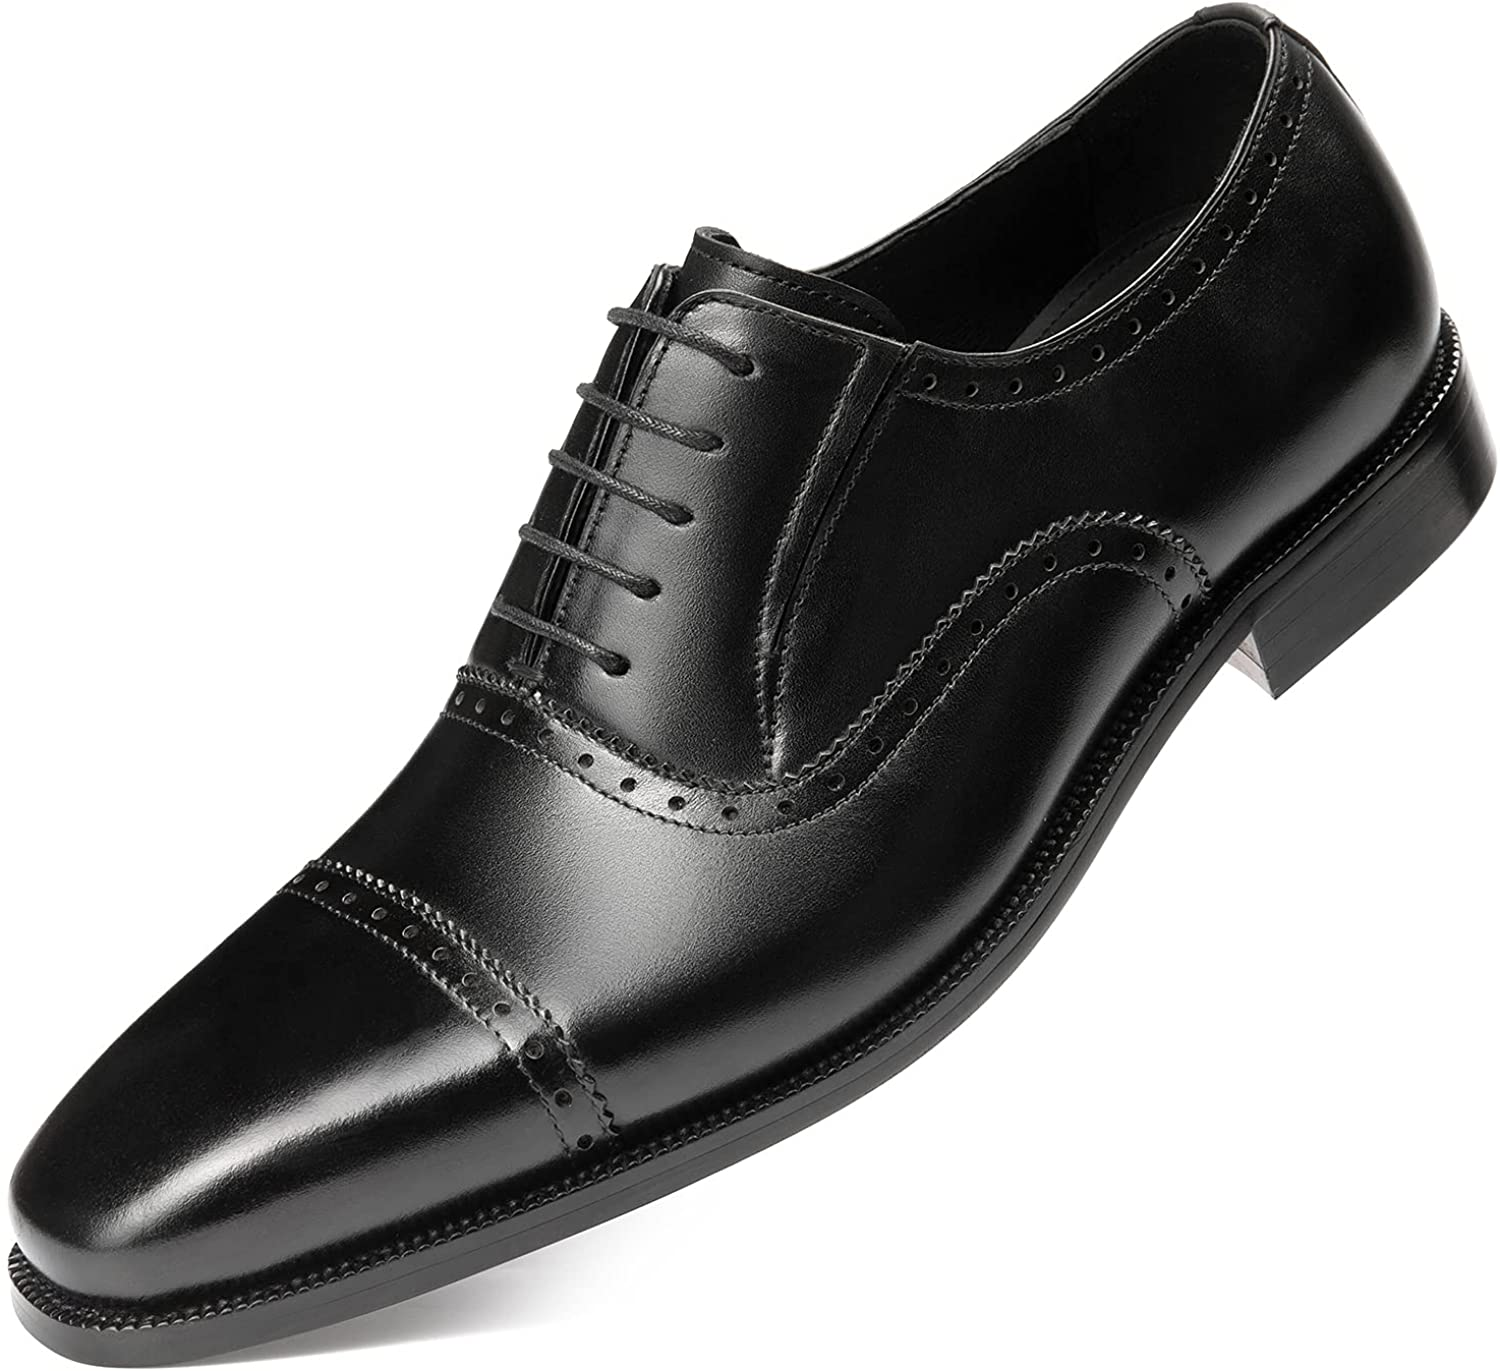 Hallow unbind Men's Handmade Attention brand Quarter Dress Don't miss the campaign Brogue Gra Shoes Full